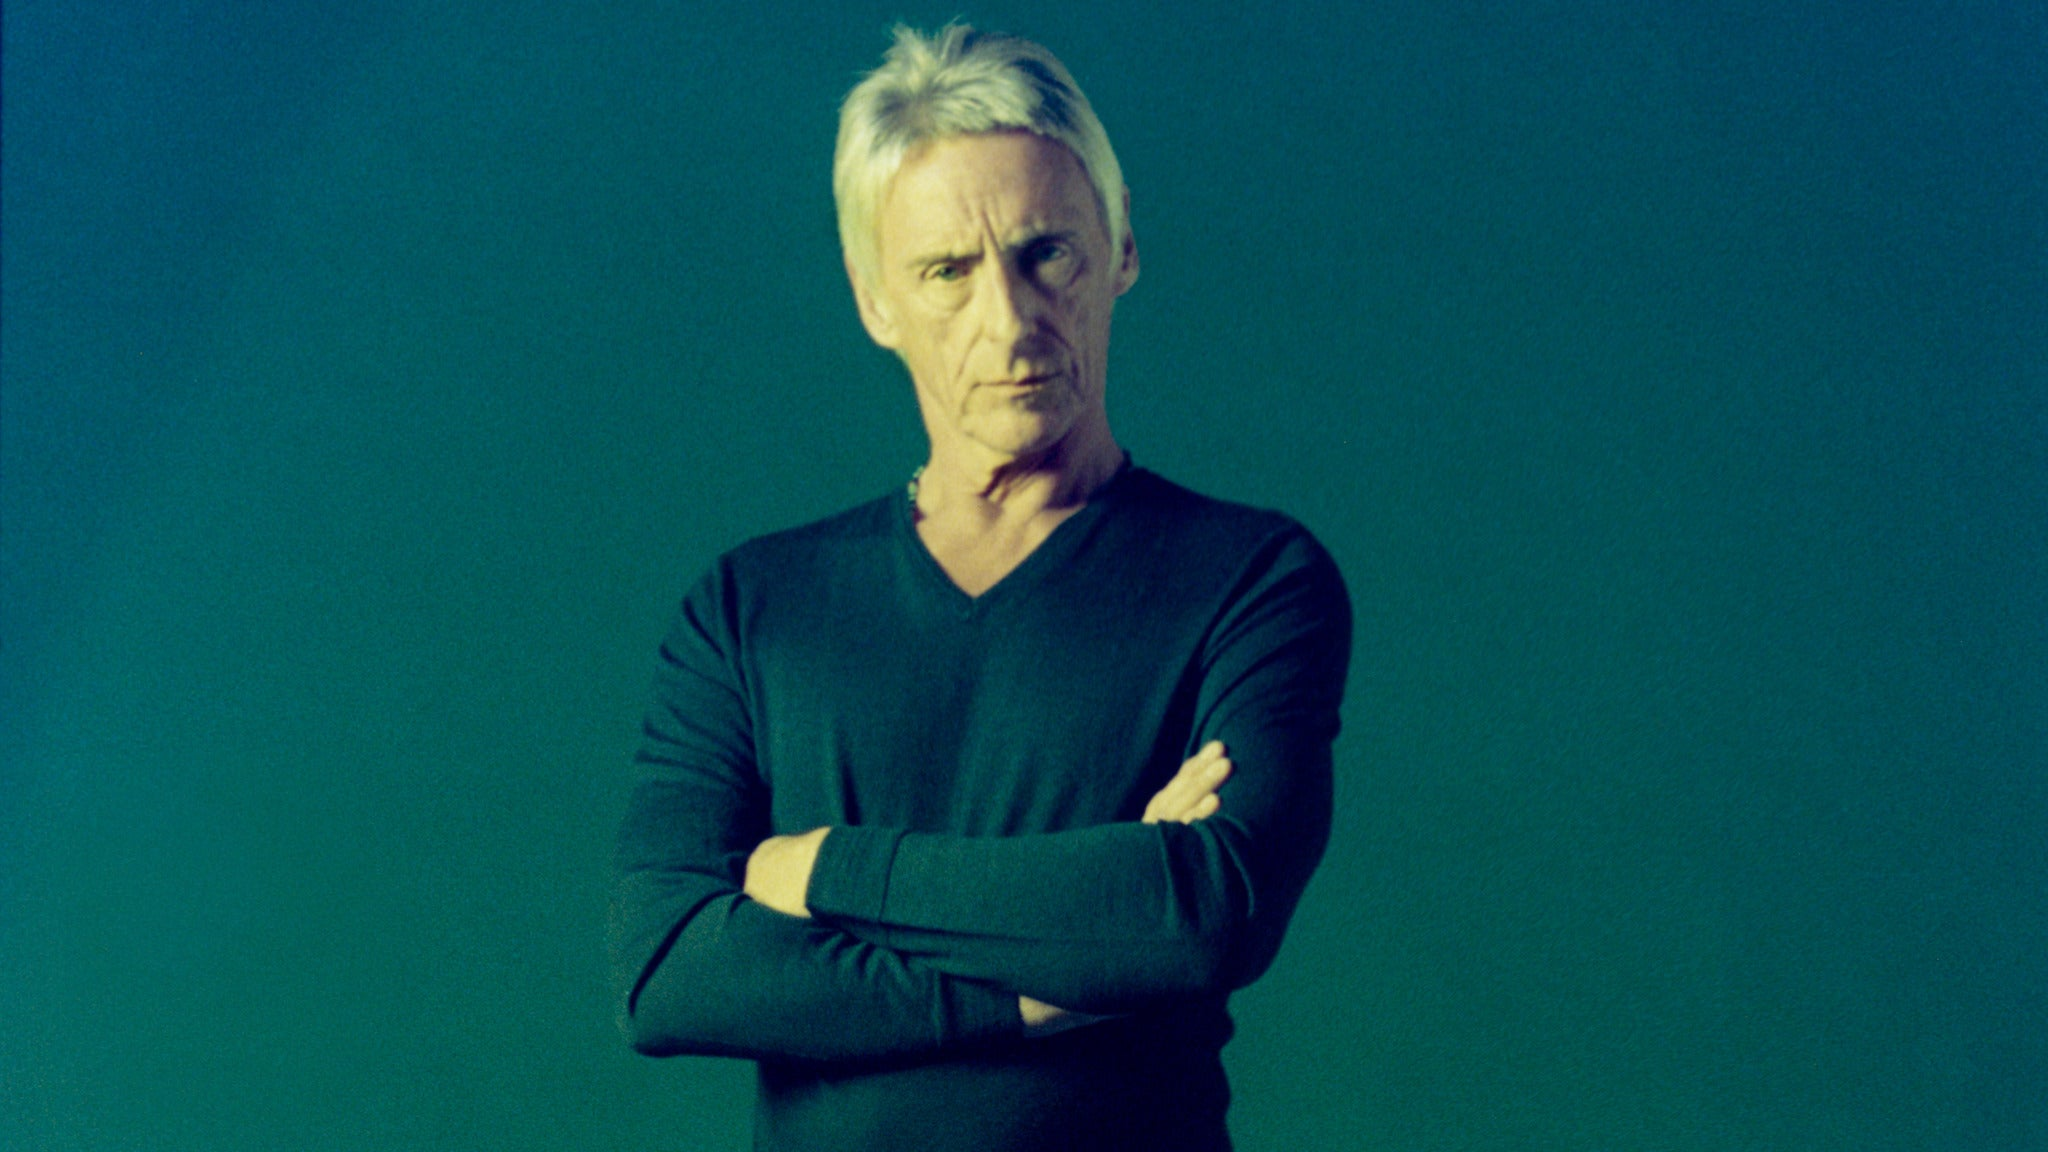 91X Presents Paul Weller - A Kind Revolution Tour